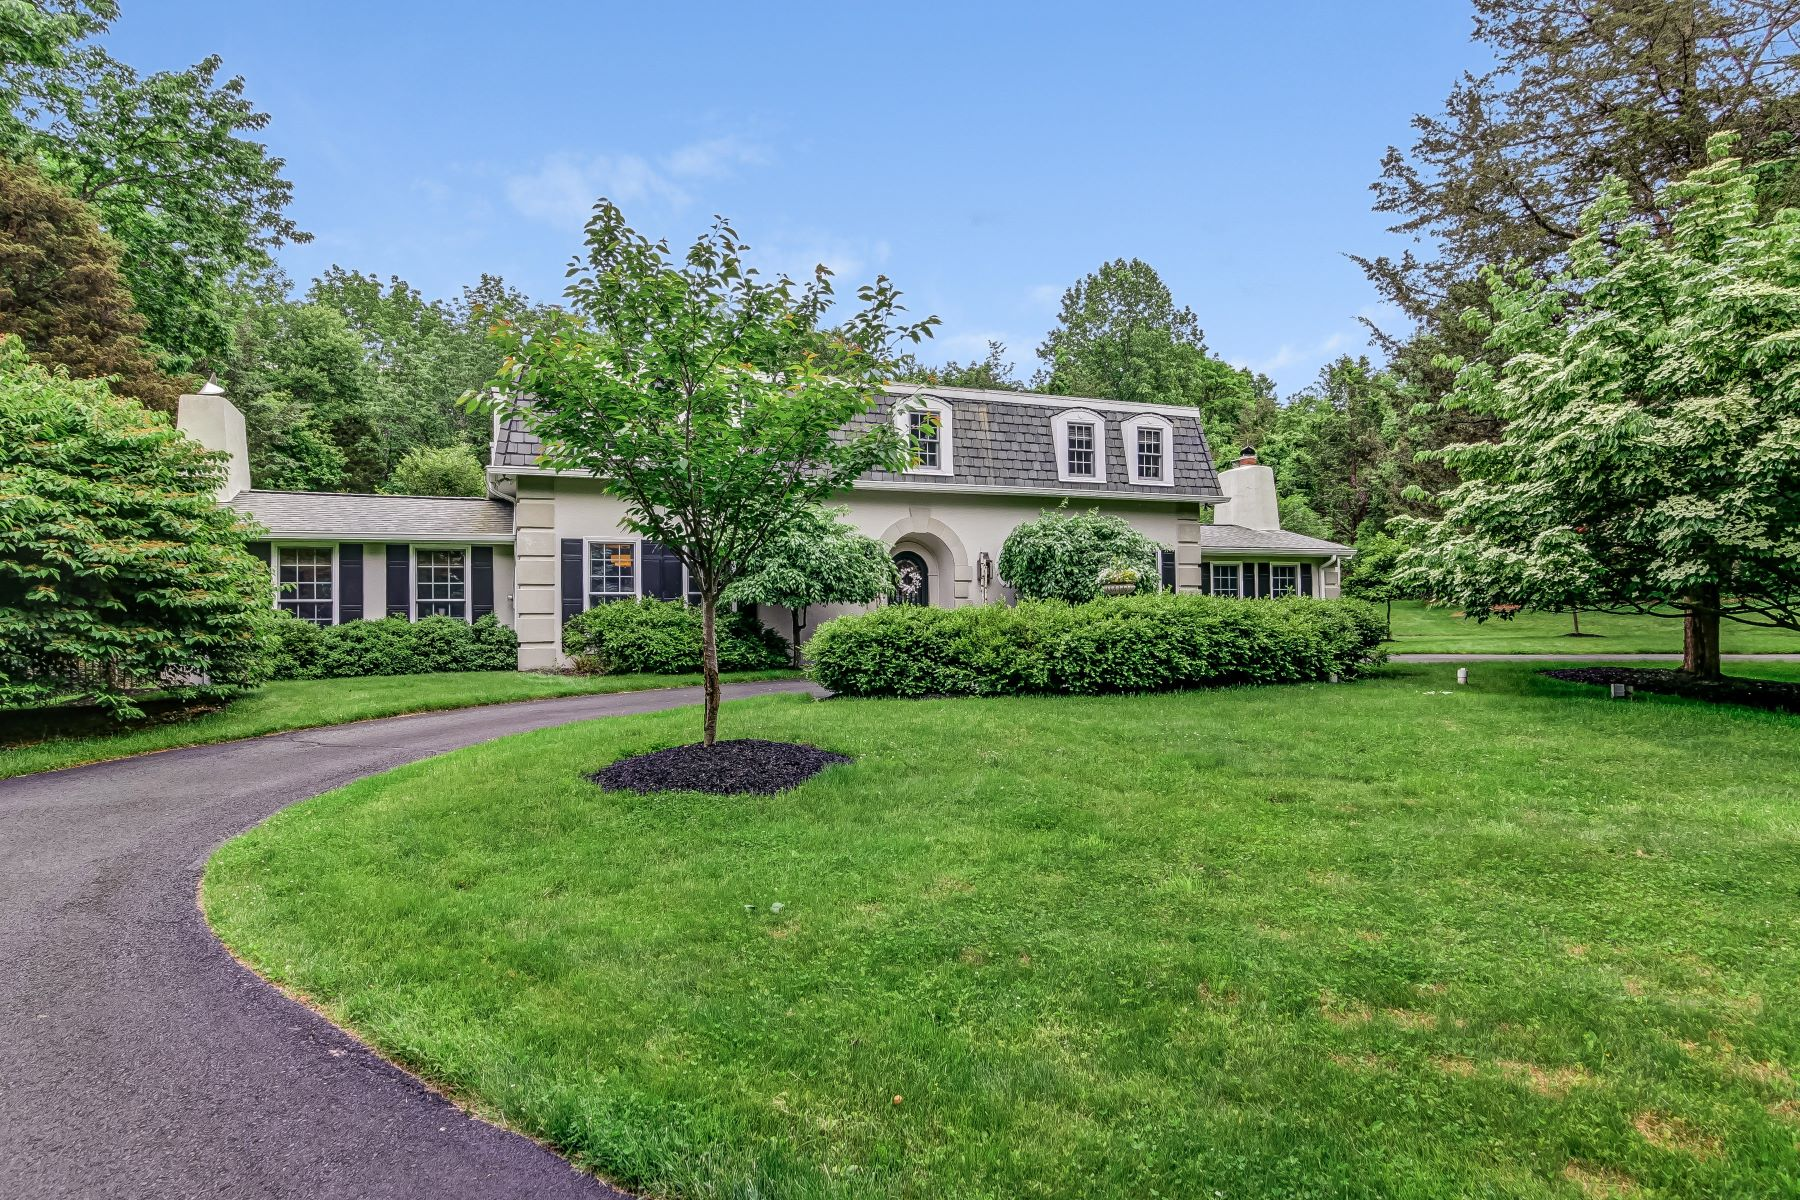 Single Family Home for Sale at Unique French Colonial 1 Cedar Lane Mendham, New Jersey 07945 United States